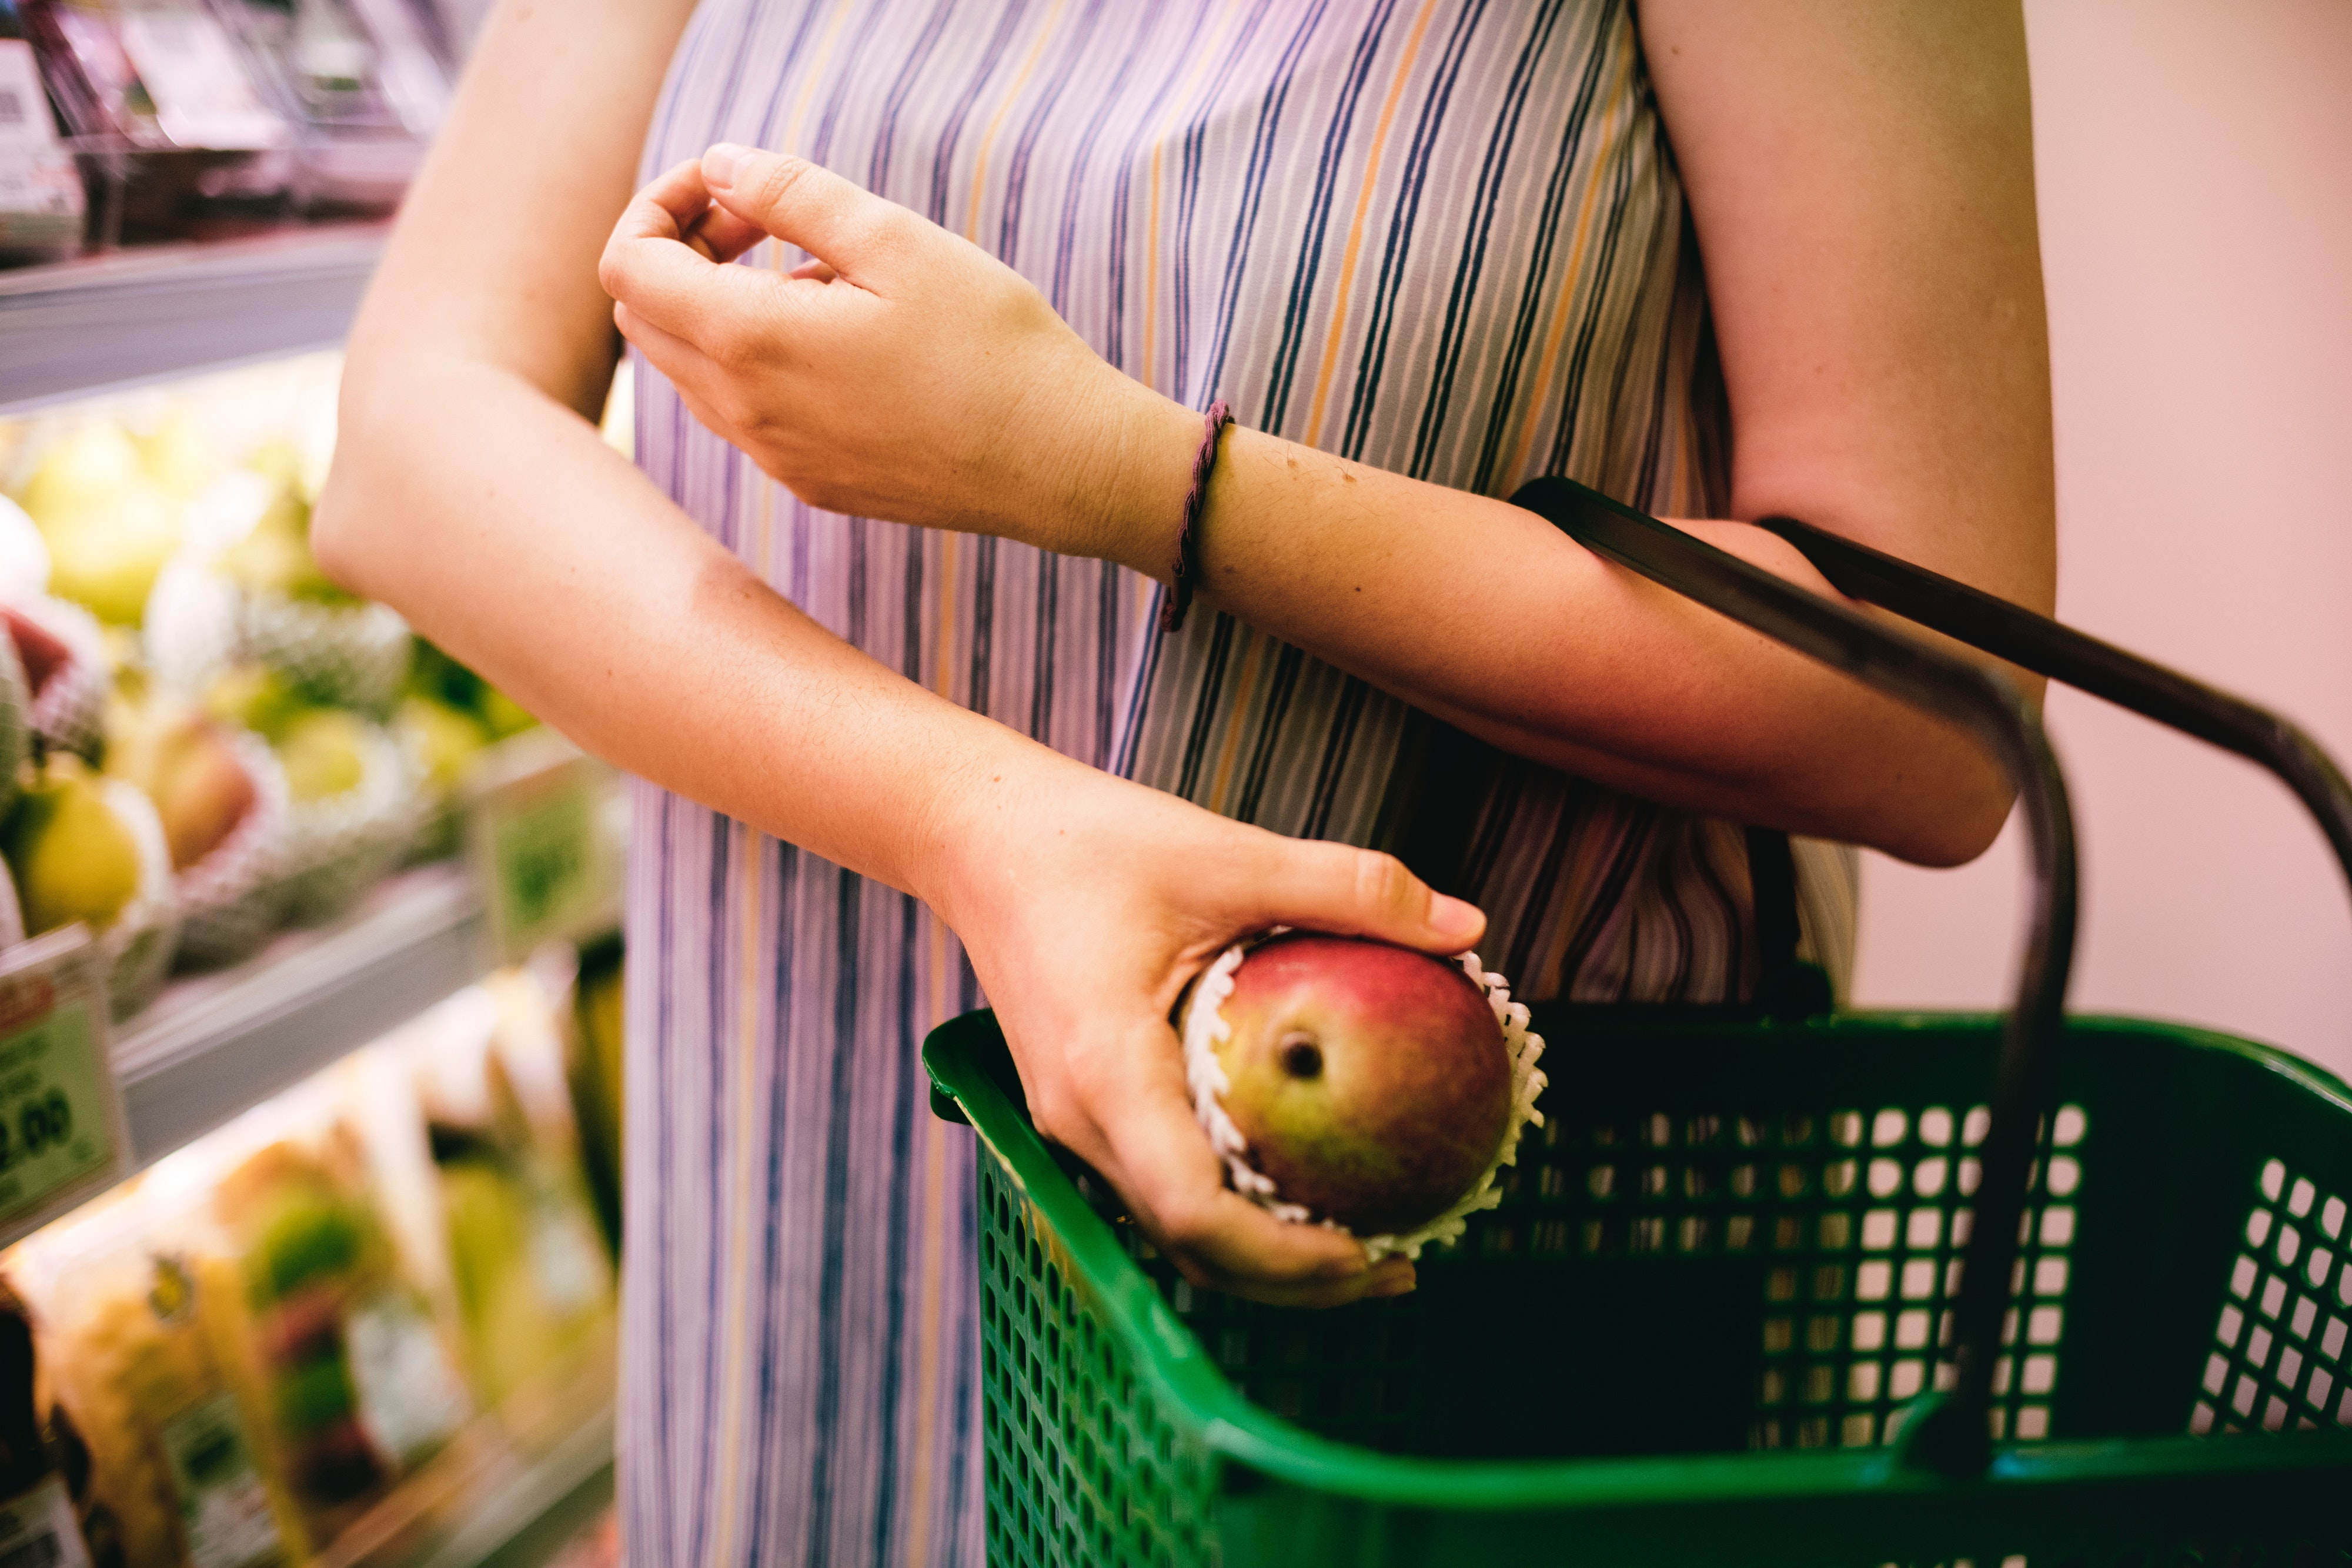 The development of organic supply chains that drive fair, transparent and healthy options for the consumer